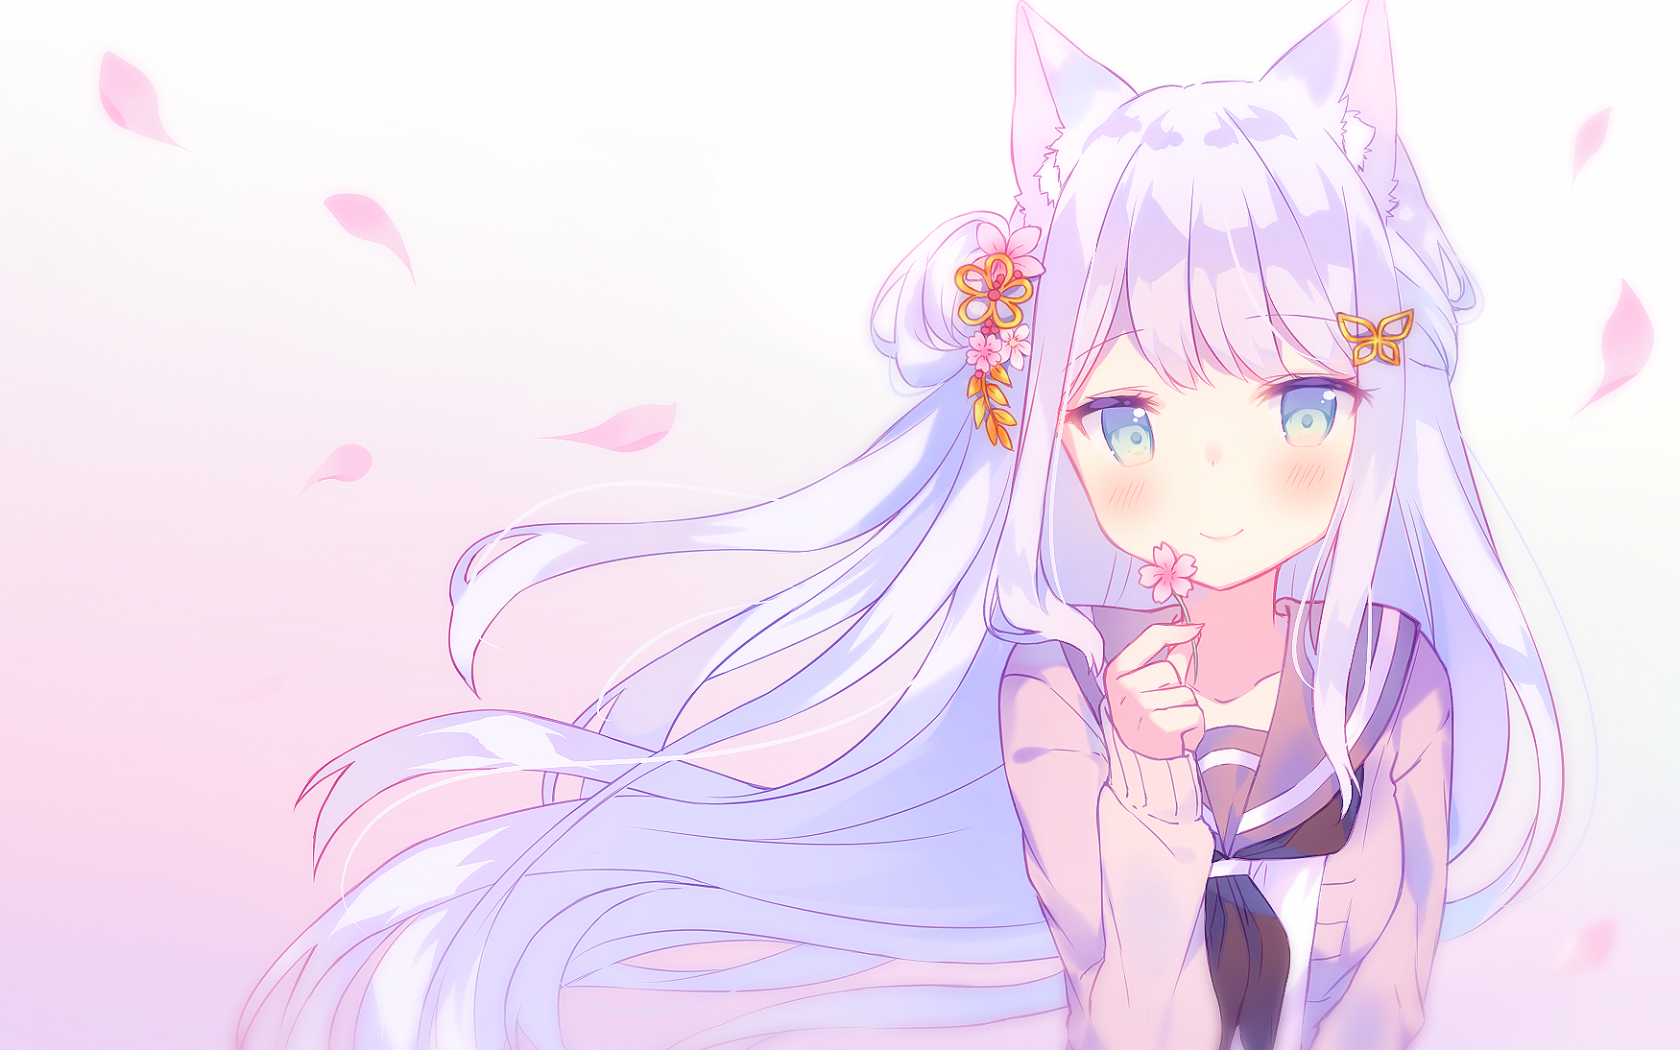 Cute Anime Cat Girl Wallpapers - Wallpaper Cave